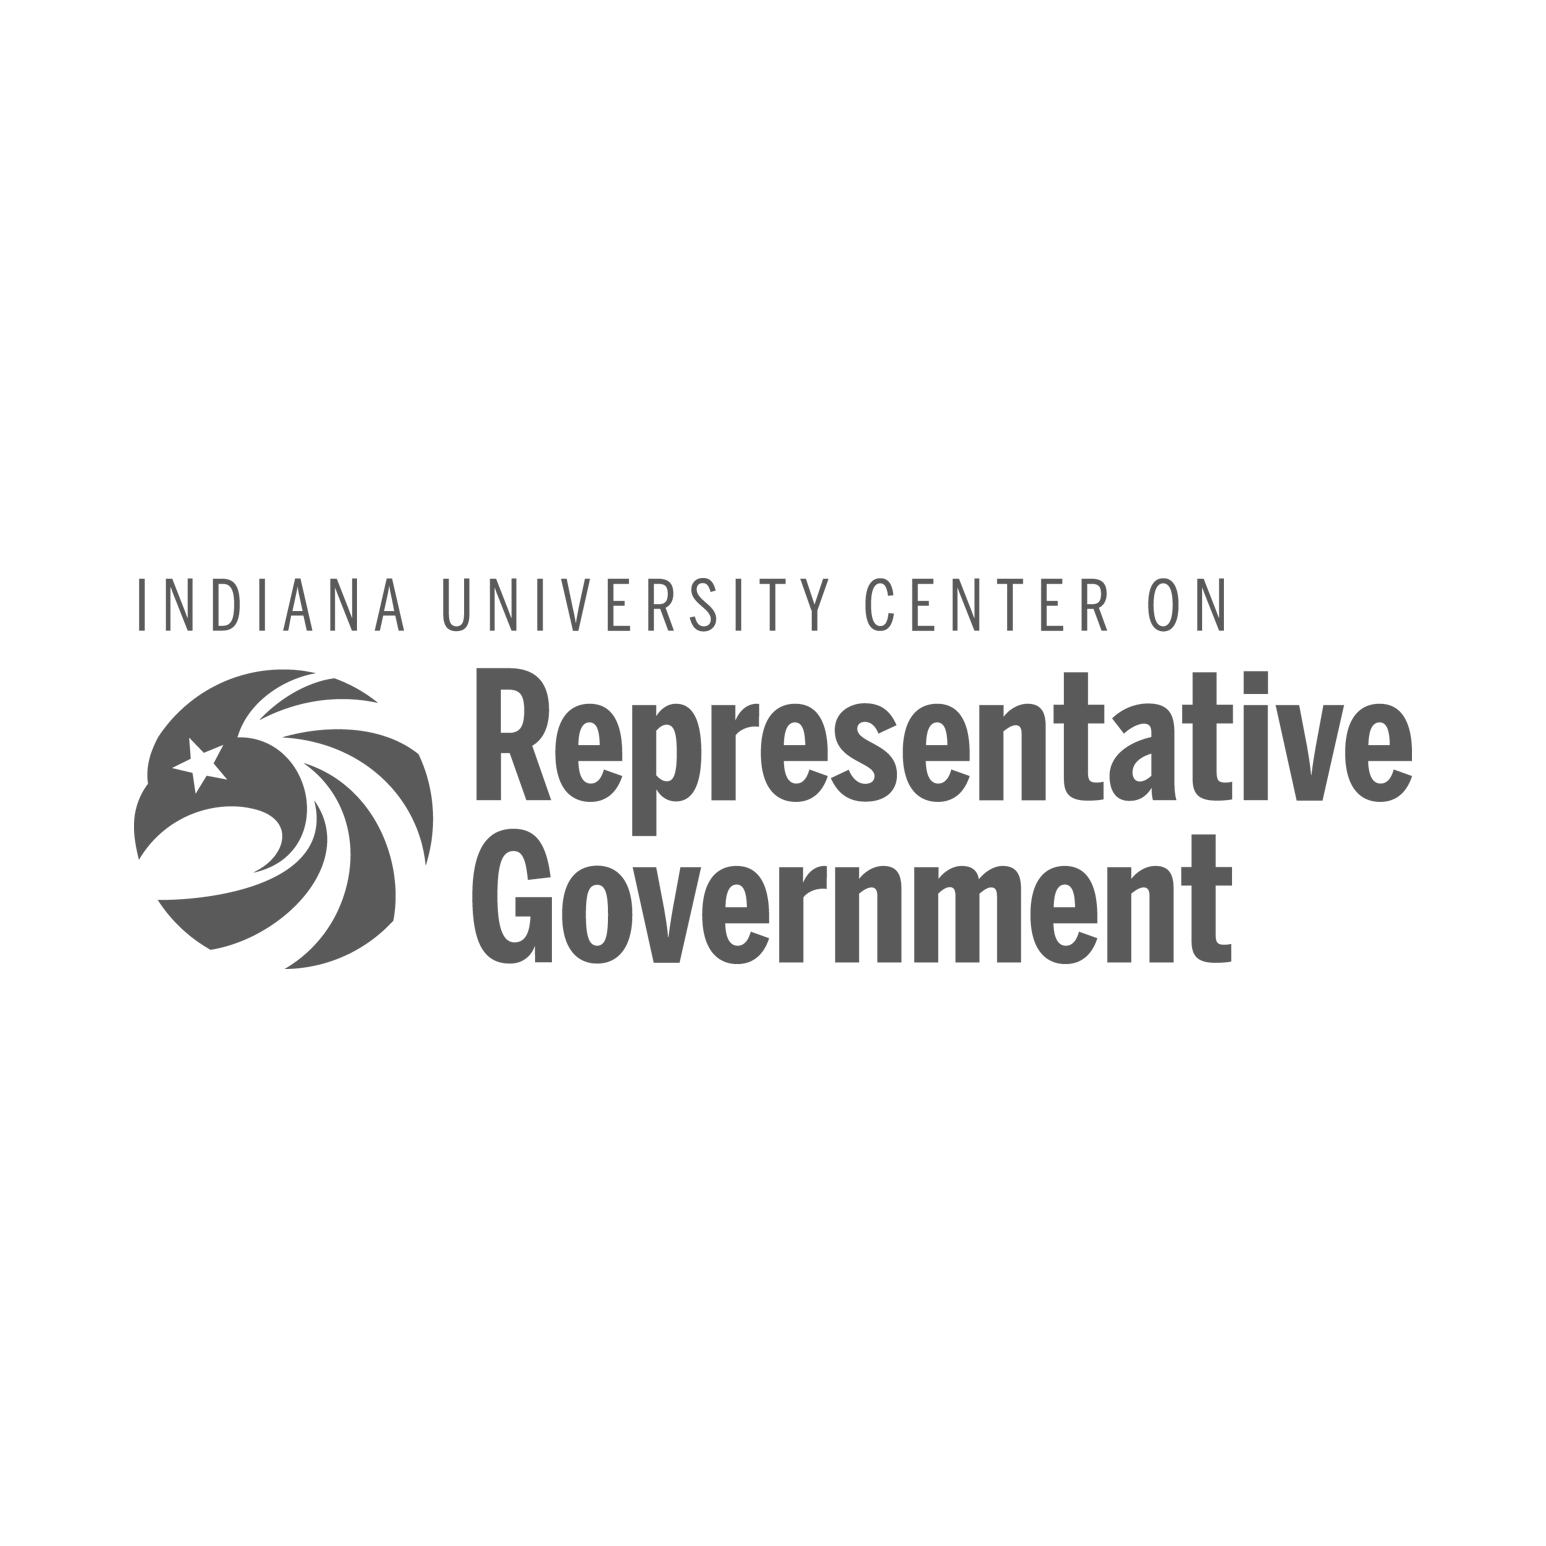 Indiana University Center on Representative Government